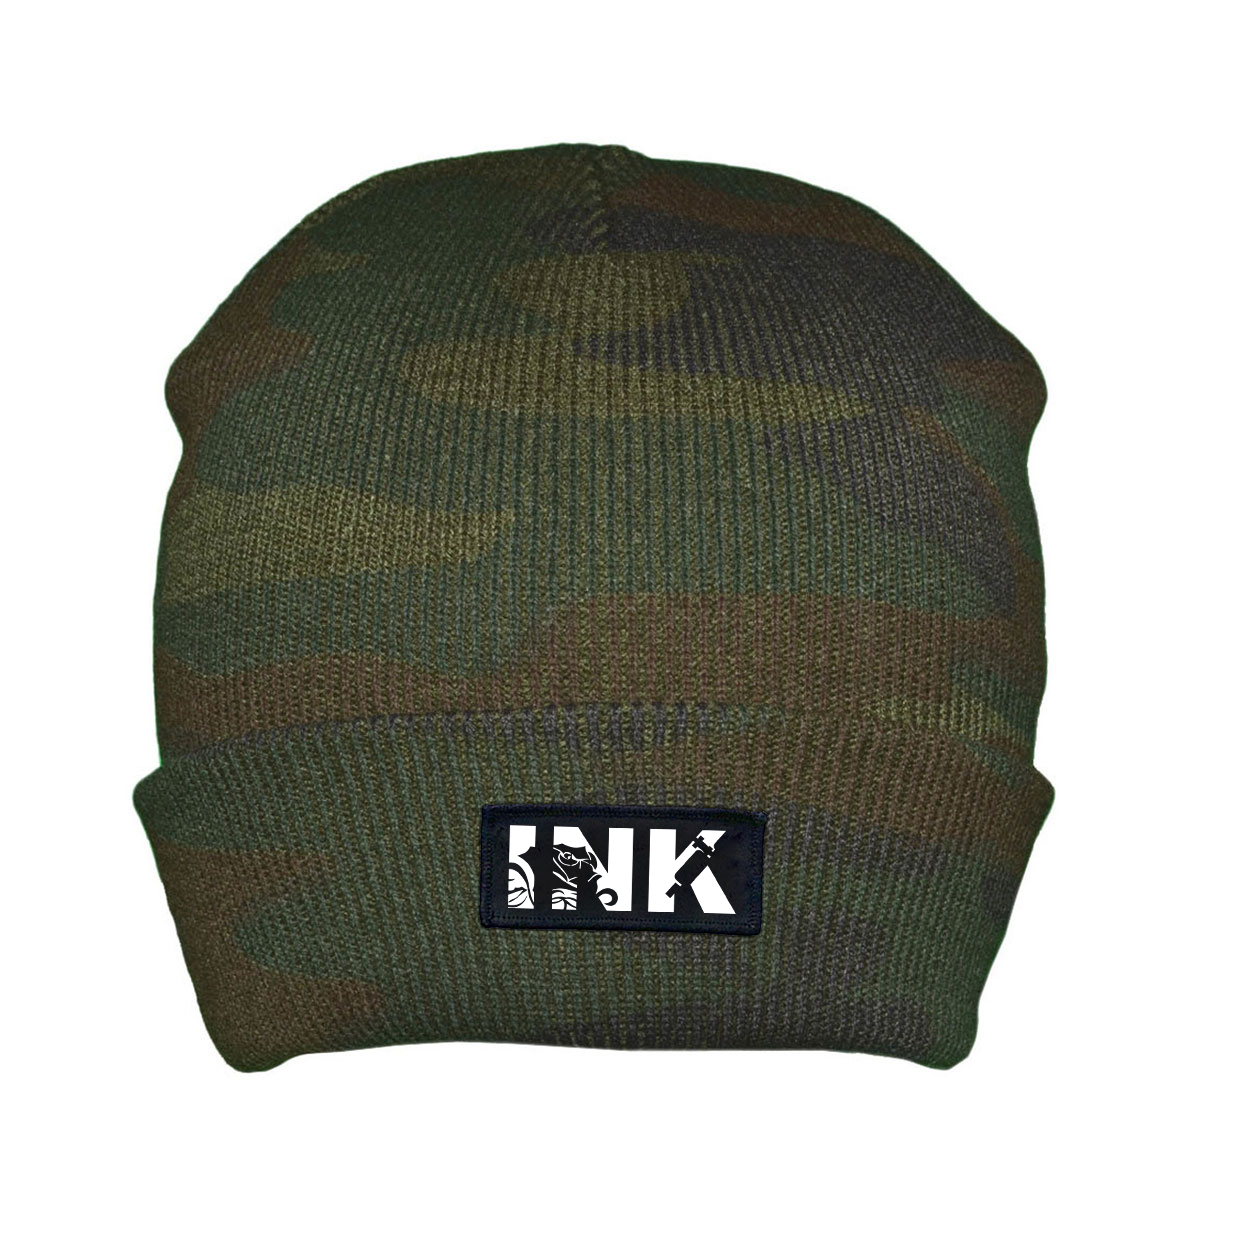 Ink Tattoo Logo Night Out Woven Patch Roll Up Skully Beanie Camo (White Logo)